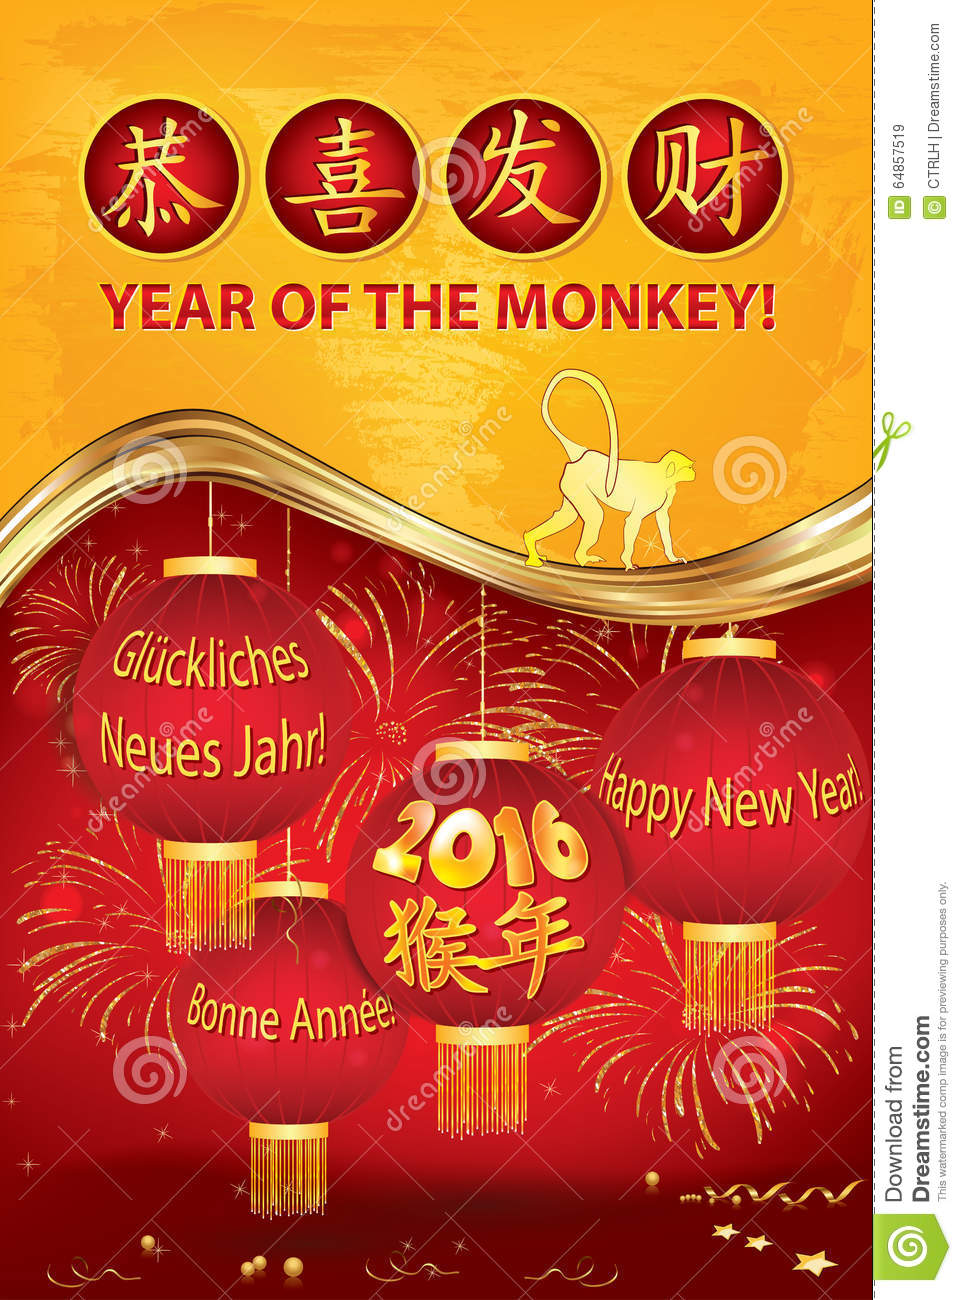 Business Chinese New Year Greeting Card Stock Photo 64857519 Megapixl